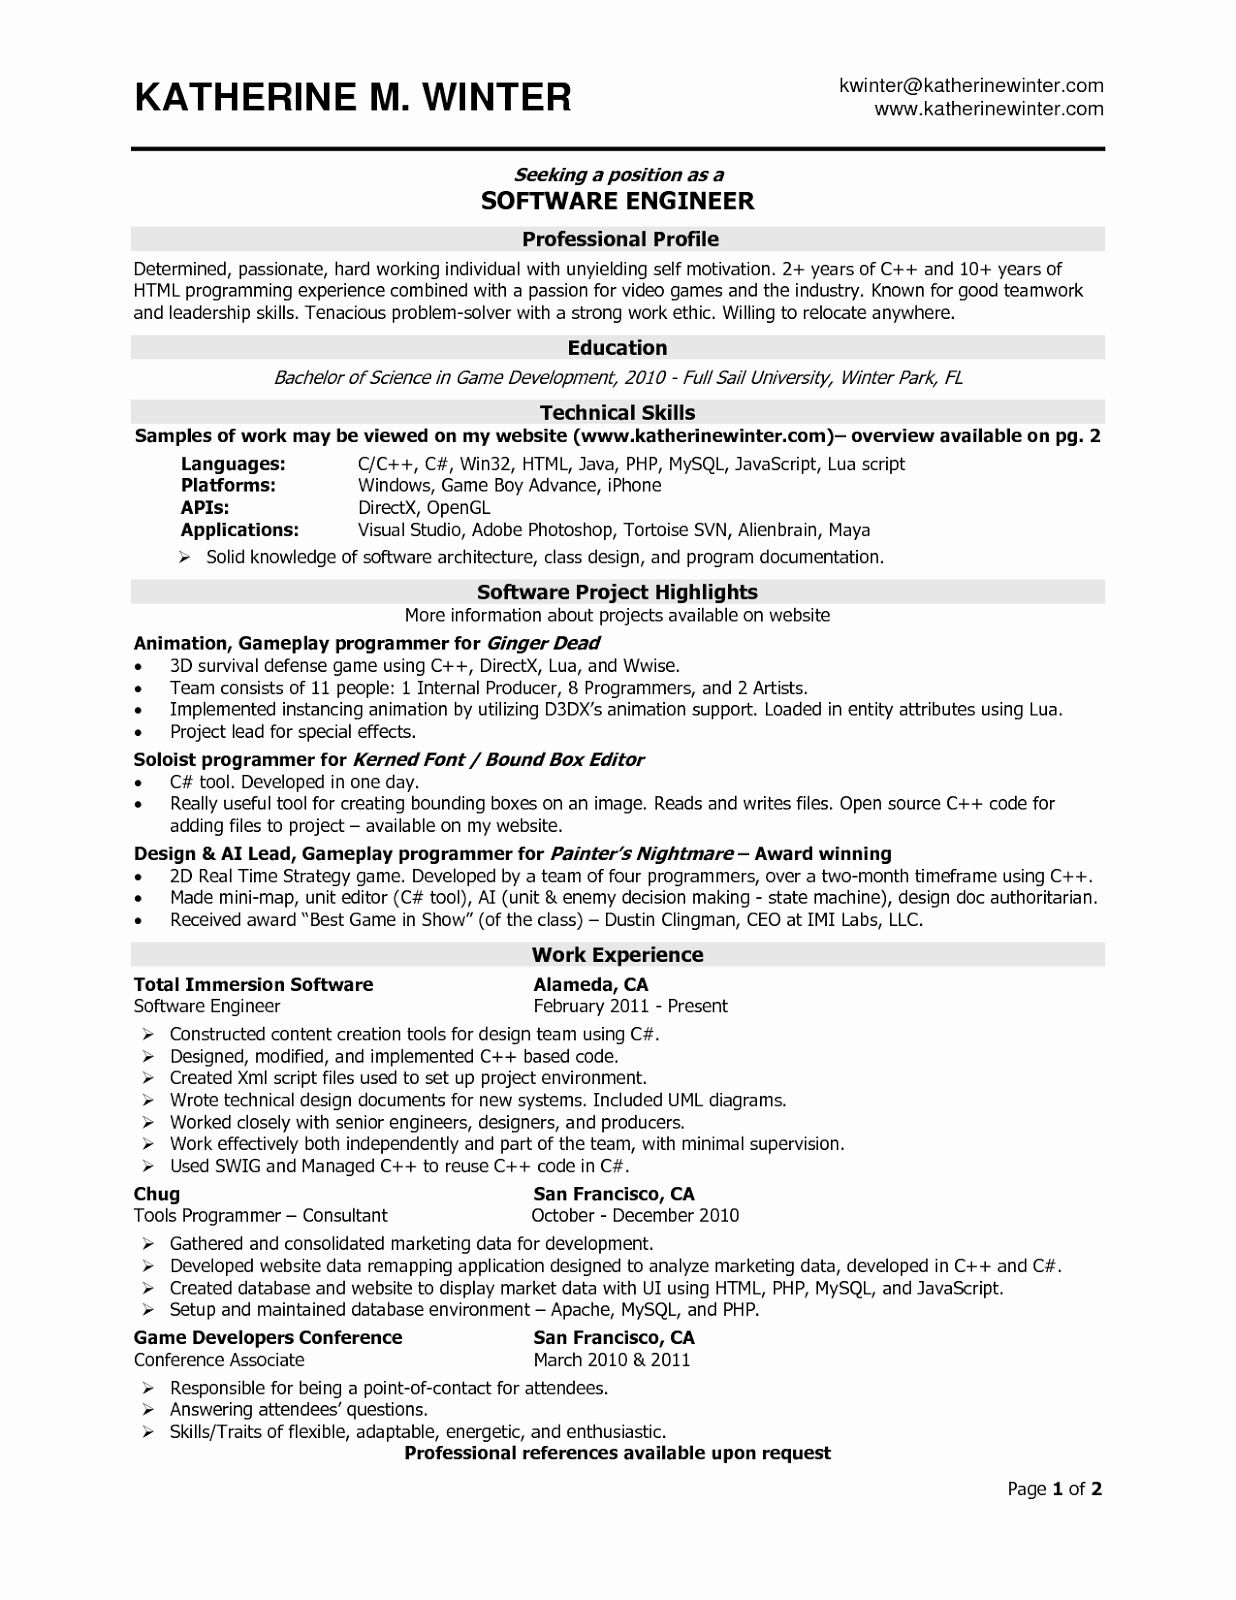 free resume templates sample format cover letter for software developer examples eit help Resume Software Developer Resume Examples 2018